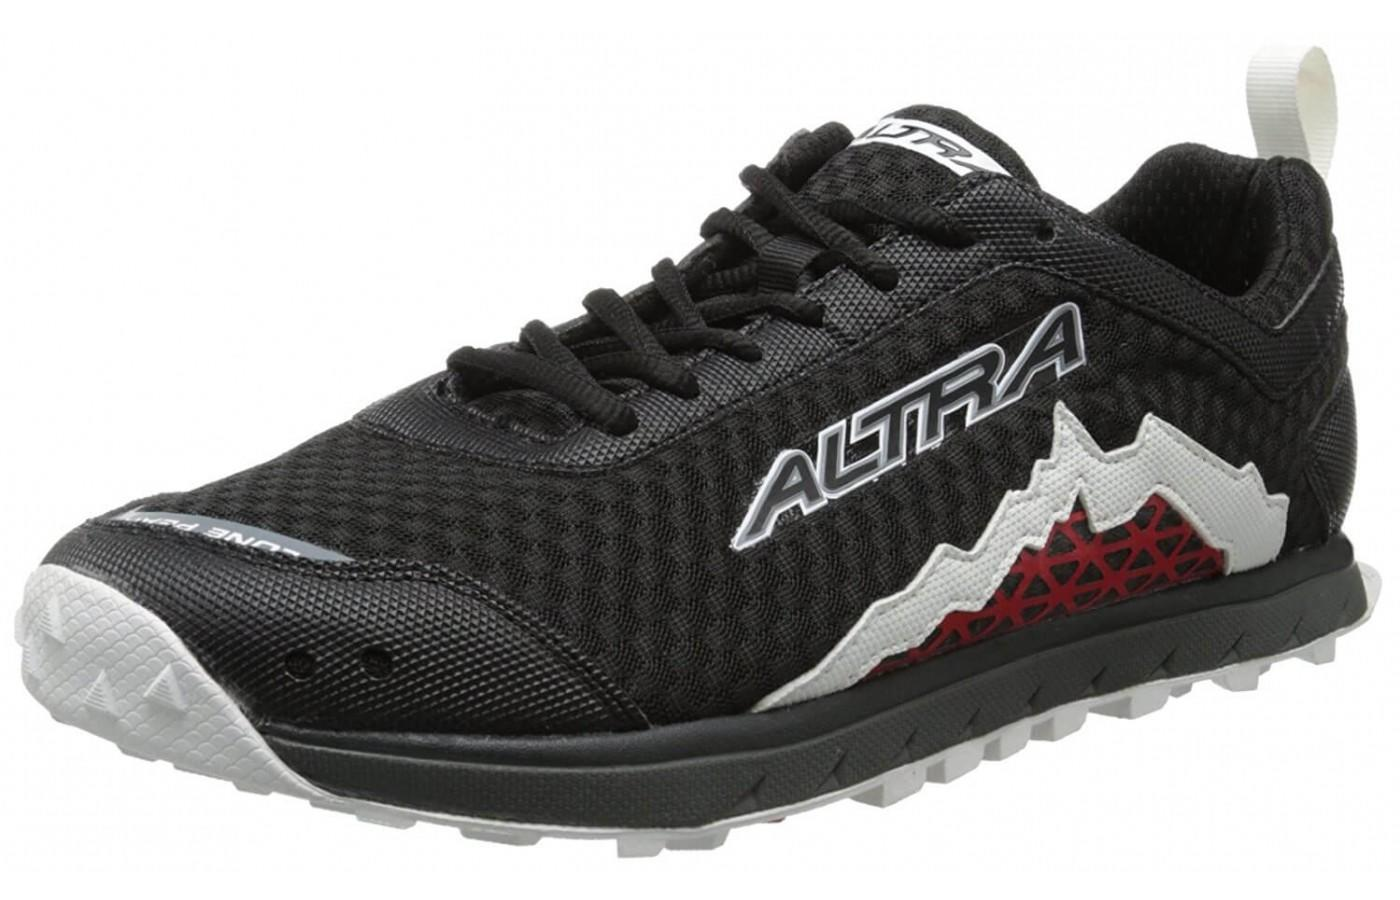 Altra Lone Peak 1.5 features a unique aesthetic